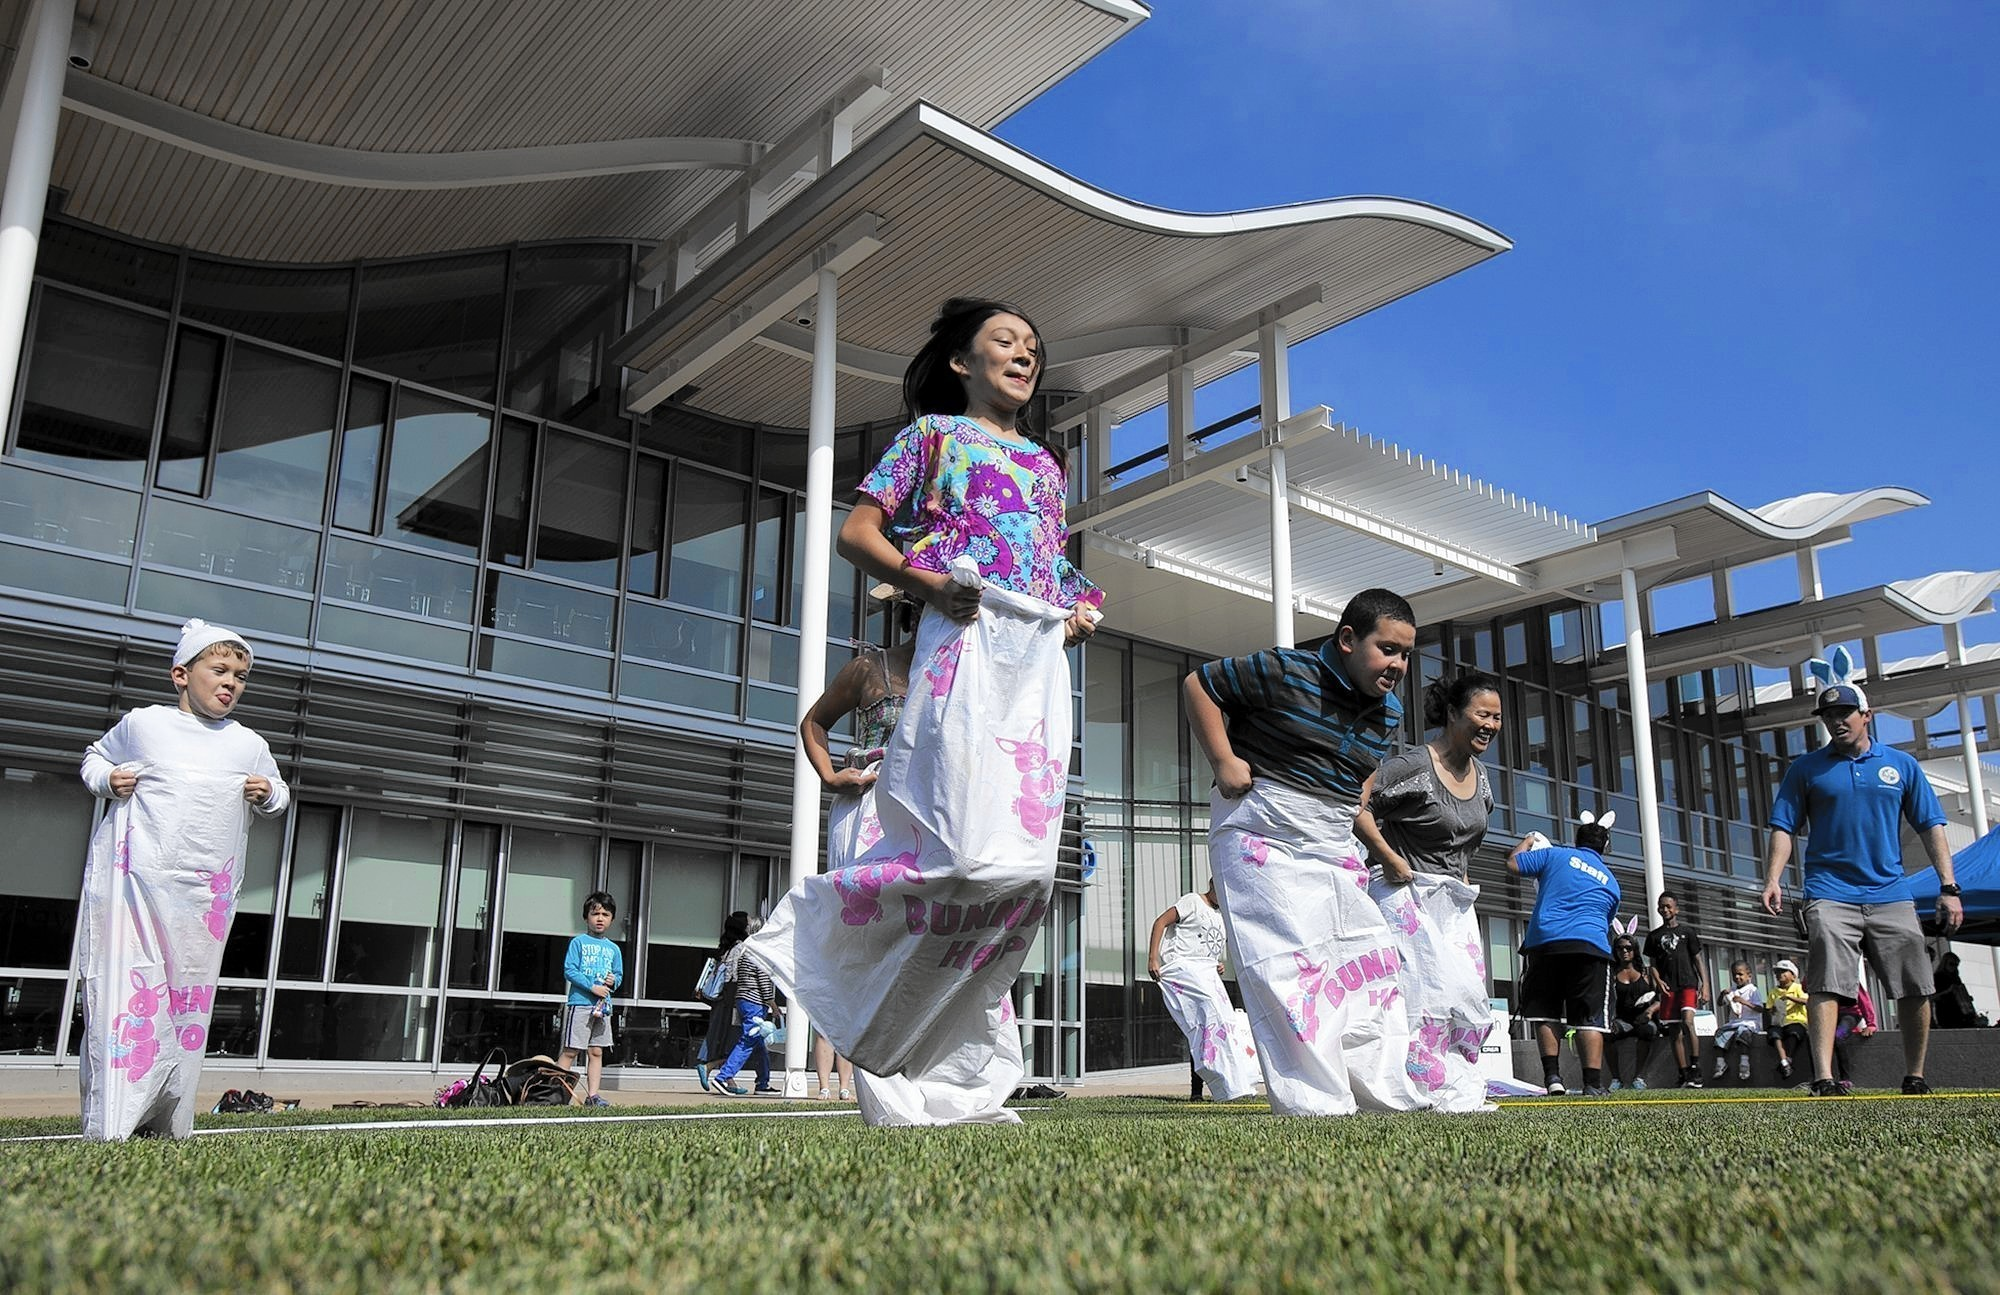 Mayor S Spring Egg Roll Event Seeks To Become Annual Tradition